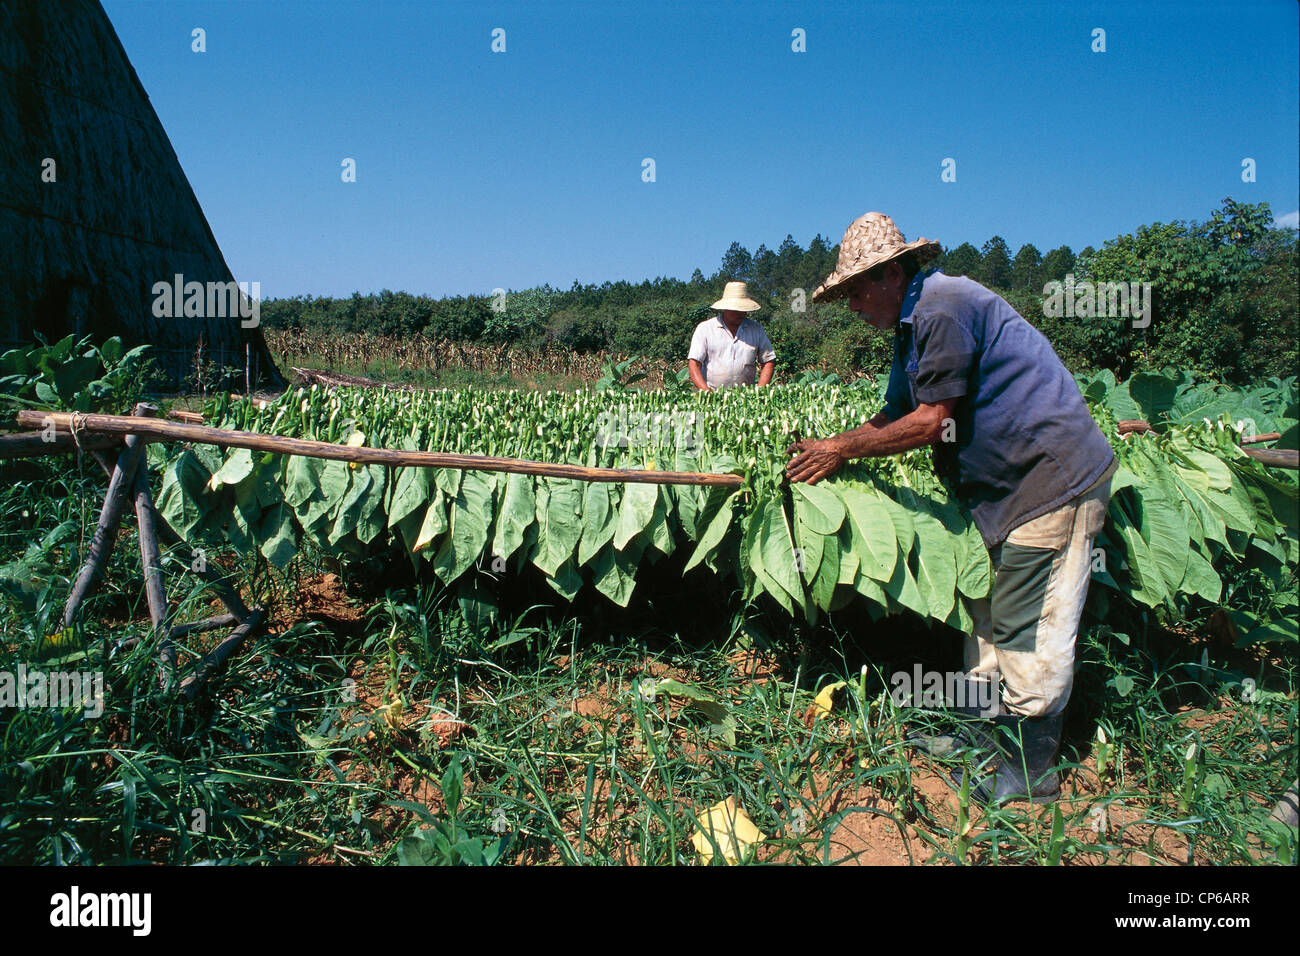 Cuba - Flat Vinales. Drying Of Tobacco Leaves - Stock Image